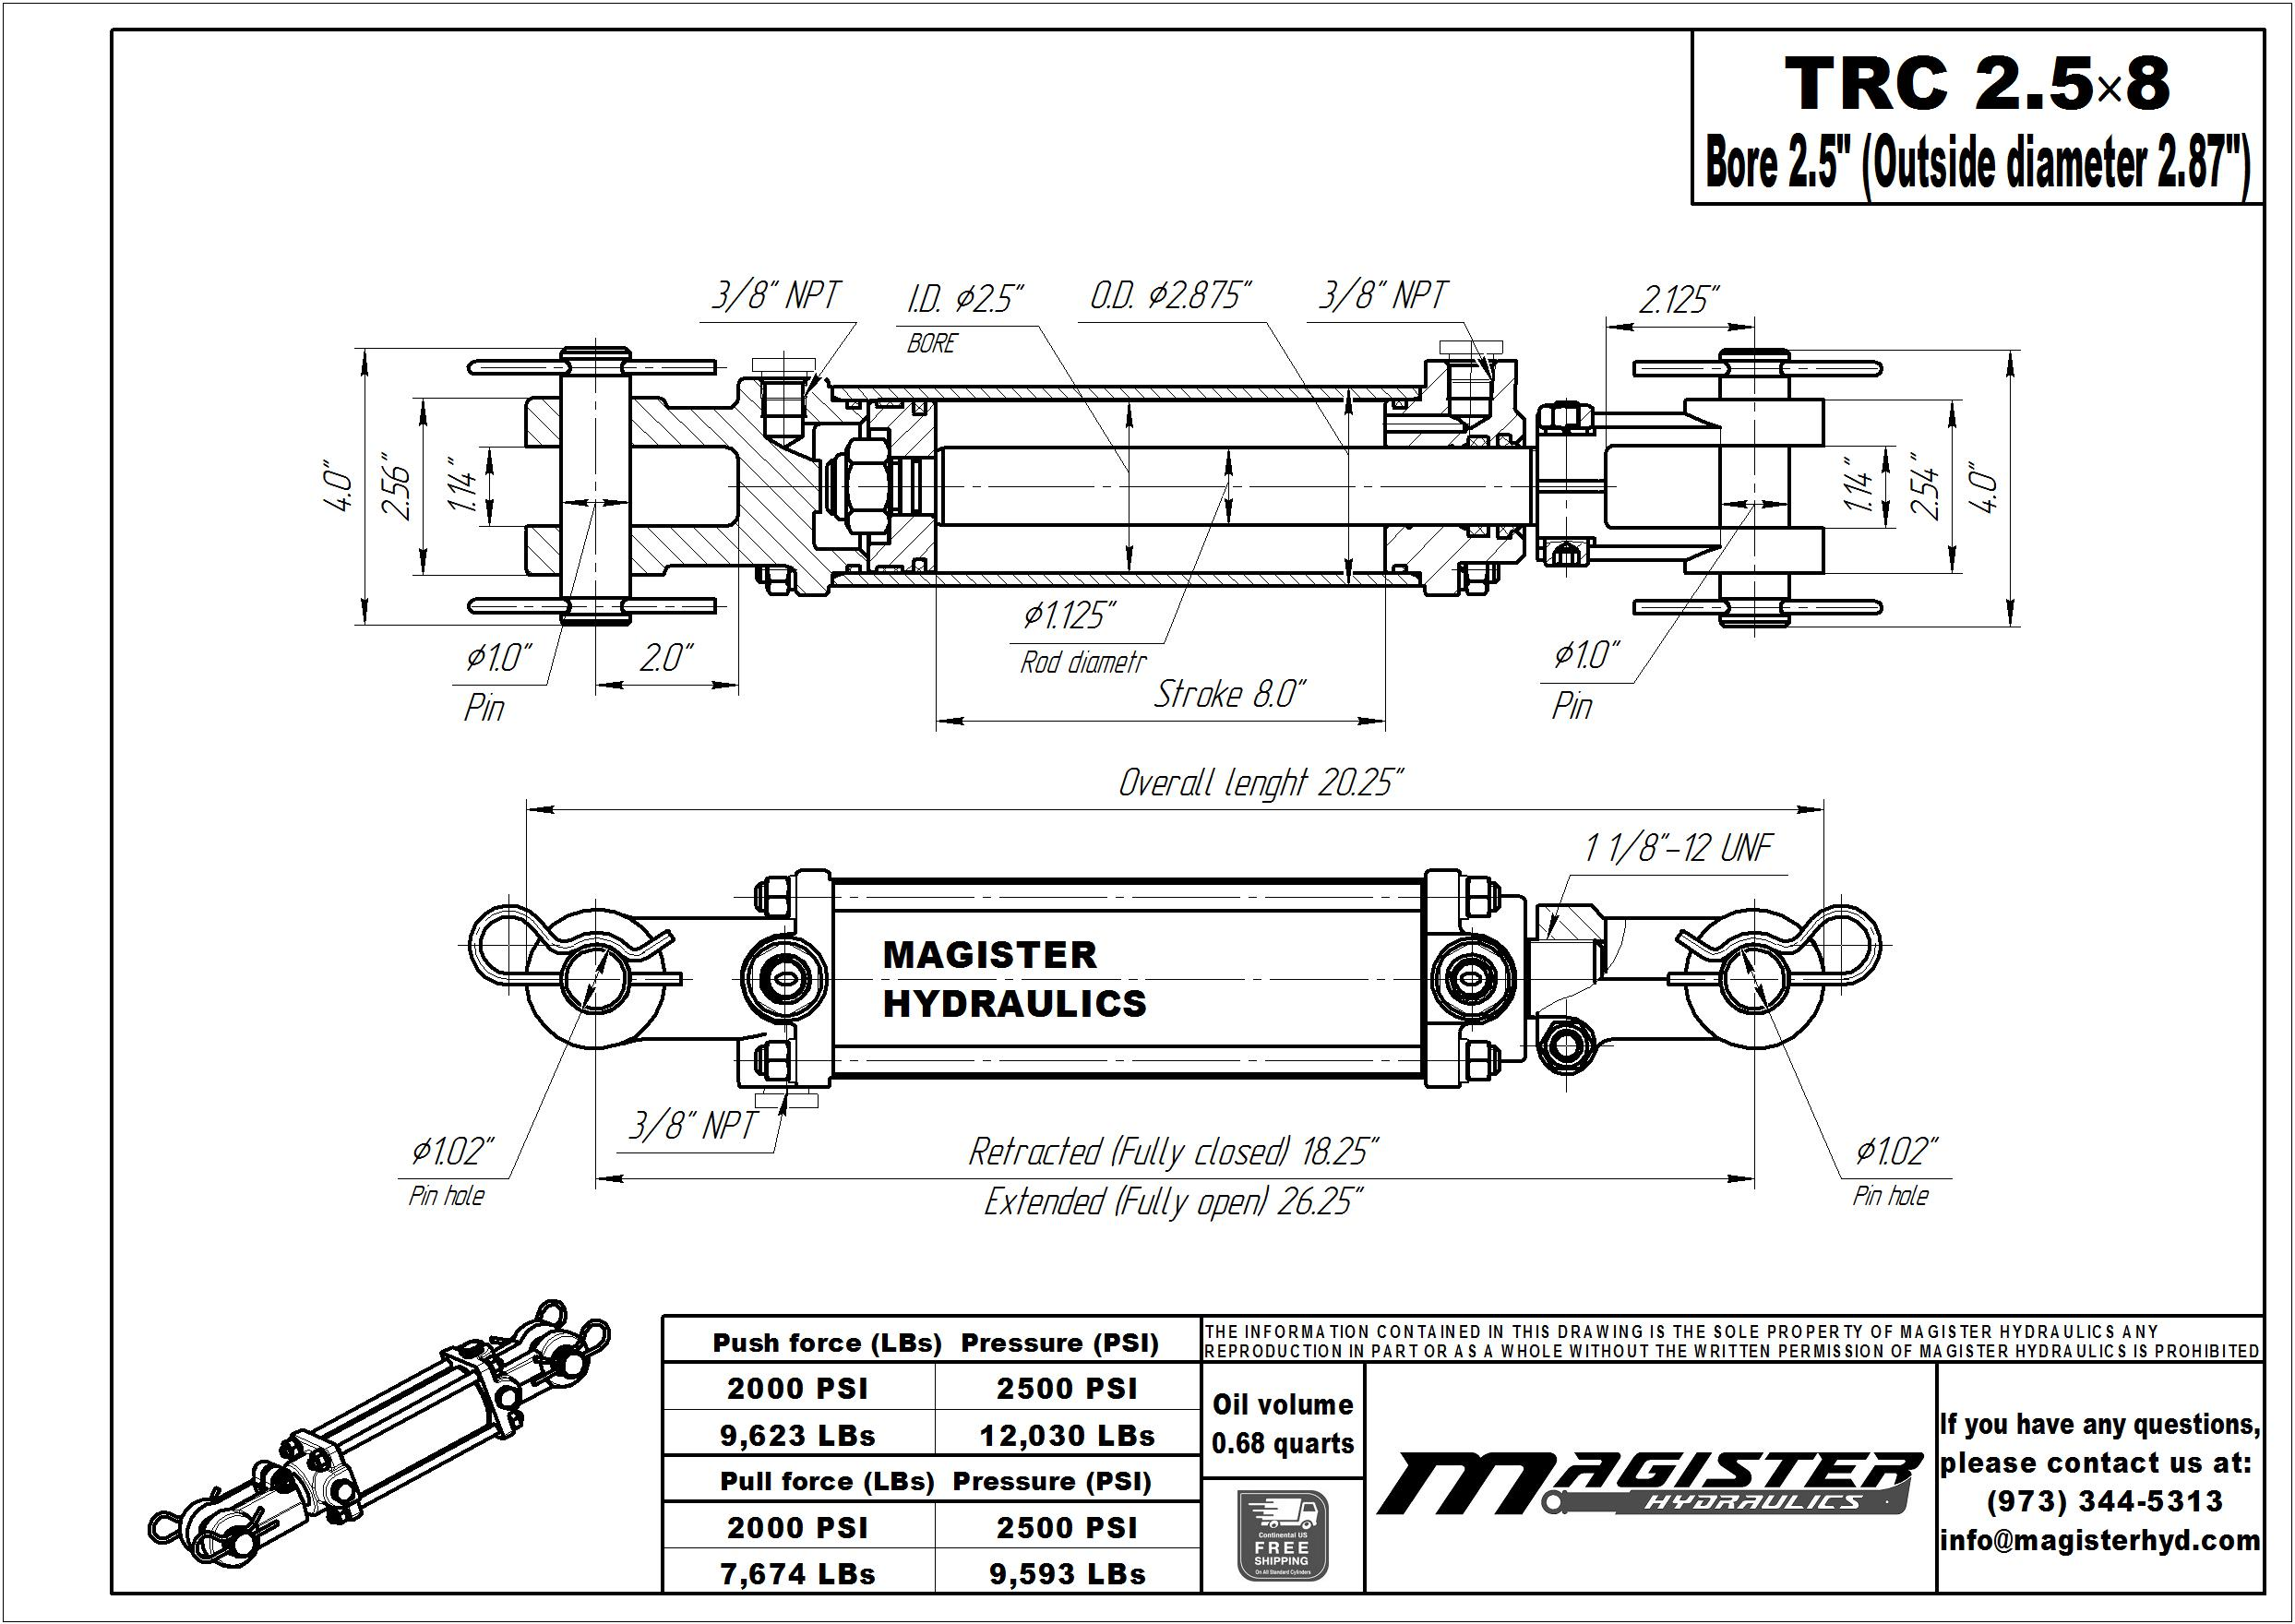 2.5 bore x 8 stroke hydraulic cylinder, tie rod double acting cylinder | Magister Hydraulics